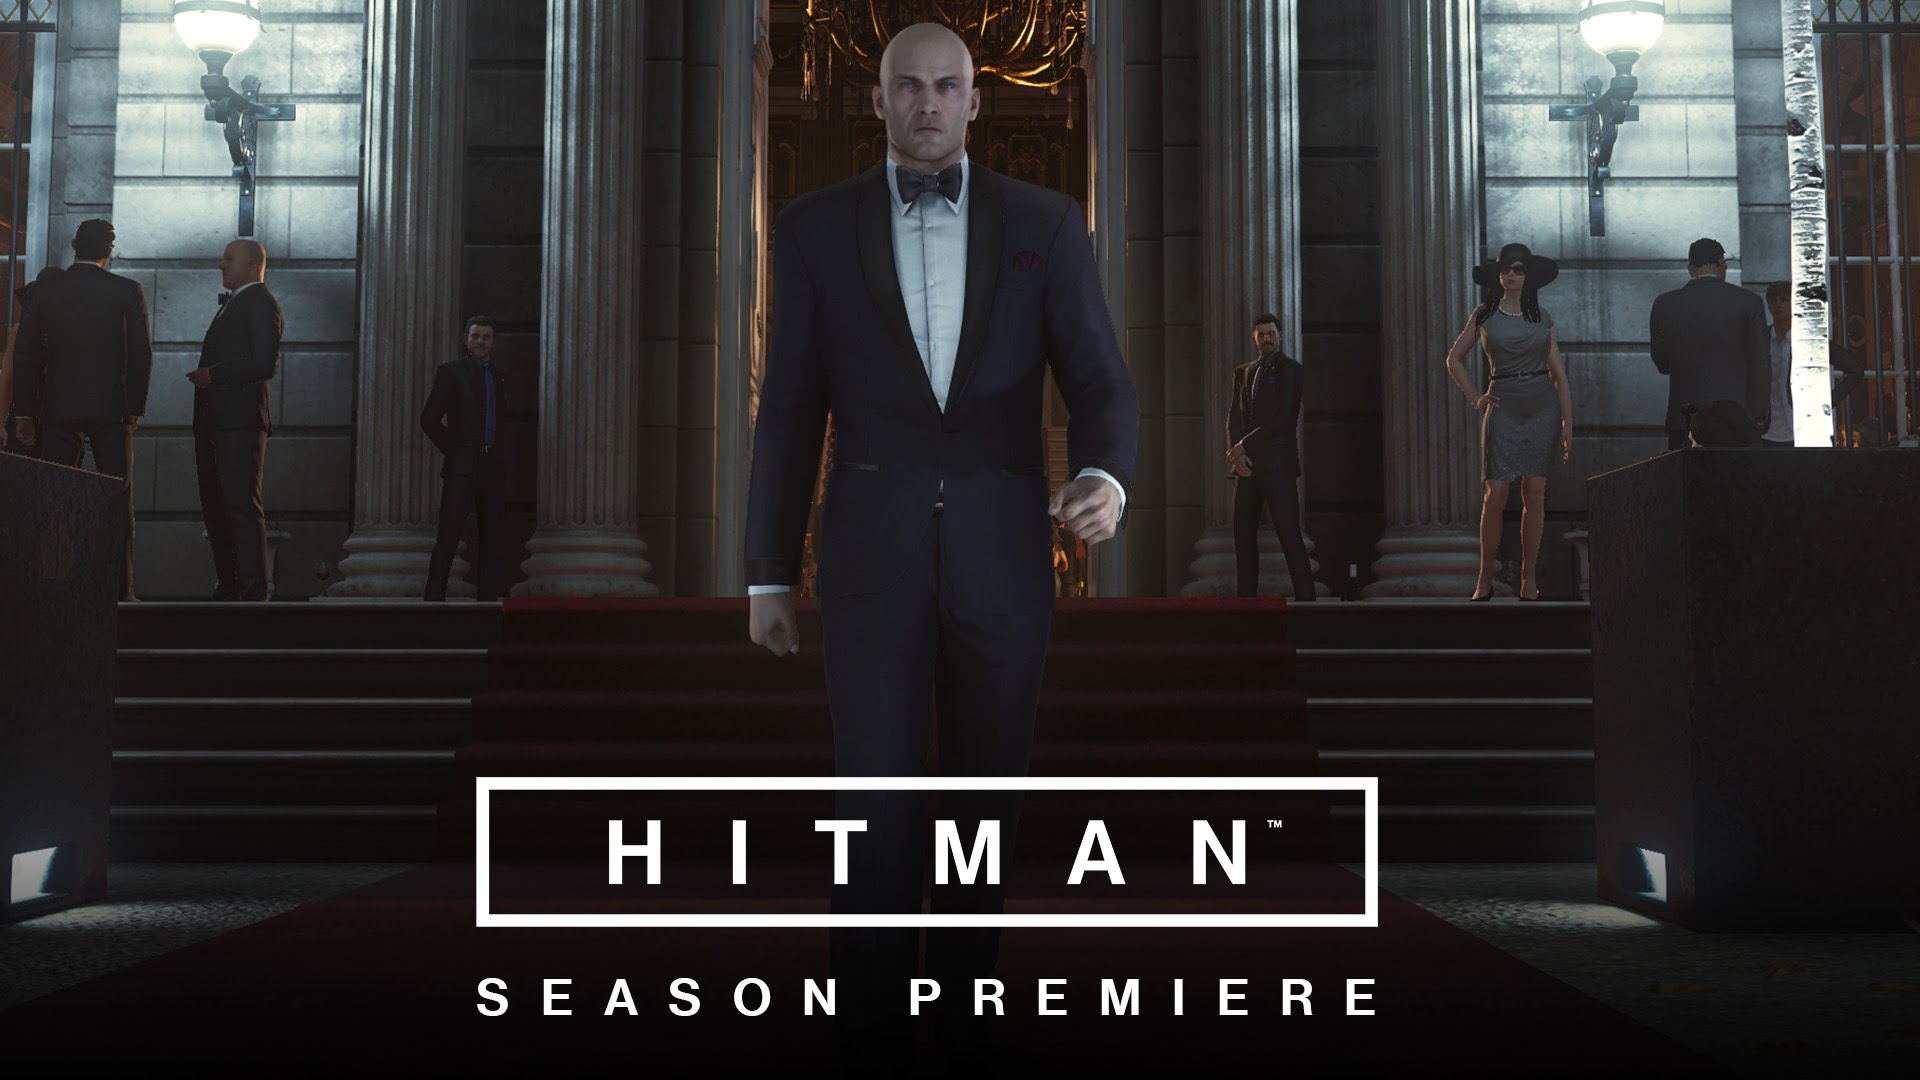 HITMAN - Season Premiere (March 11, 2016)